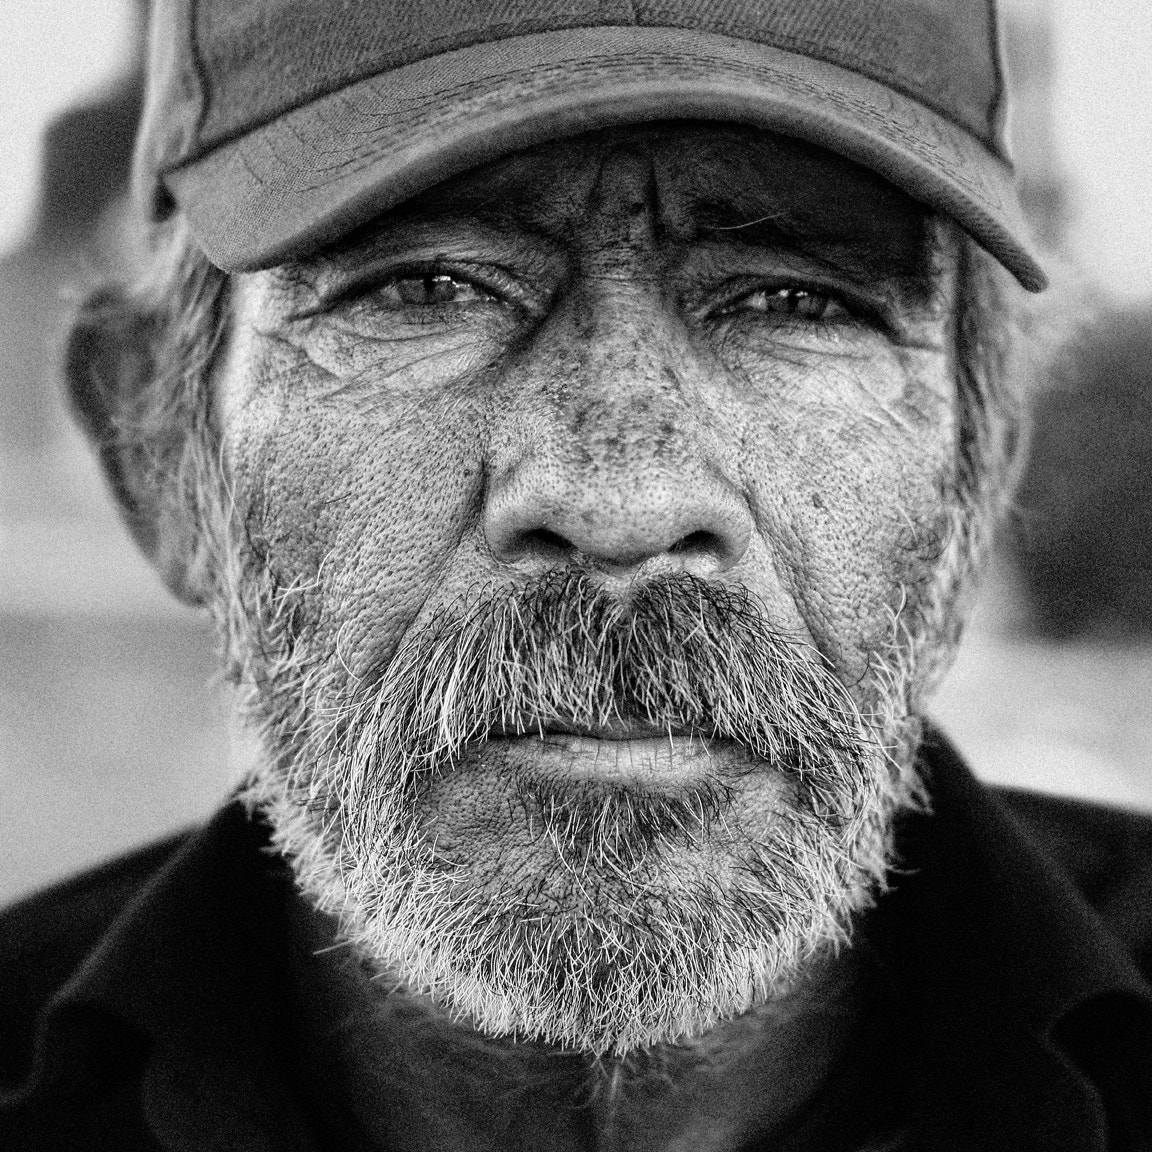 Photograph Jose by Uriel Reyes on 500px